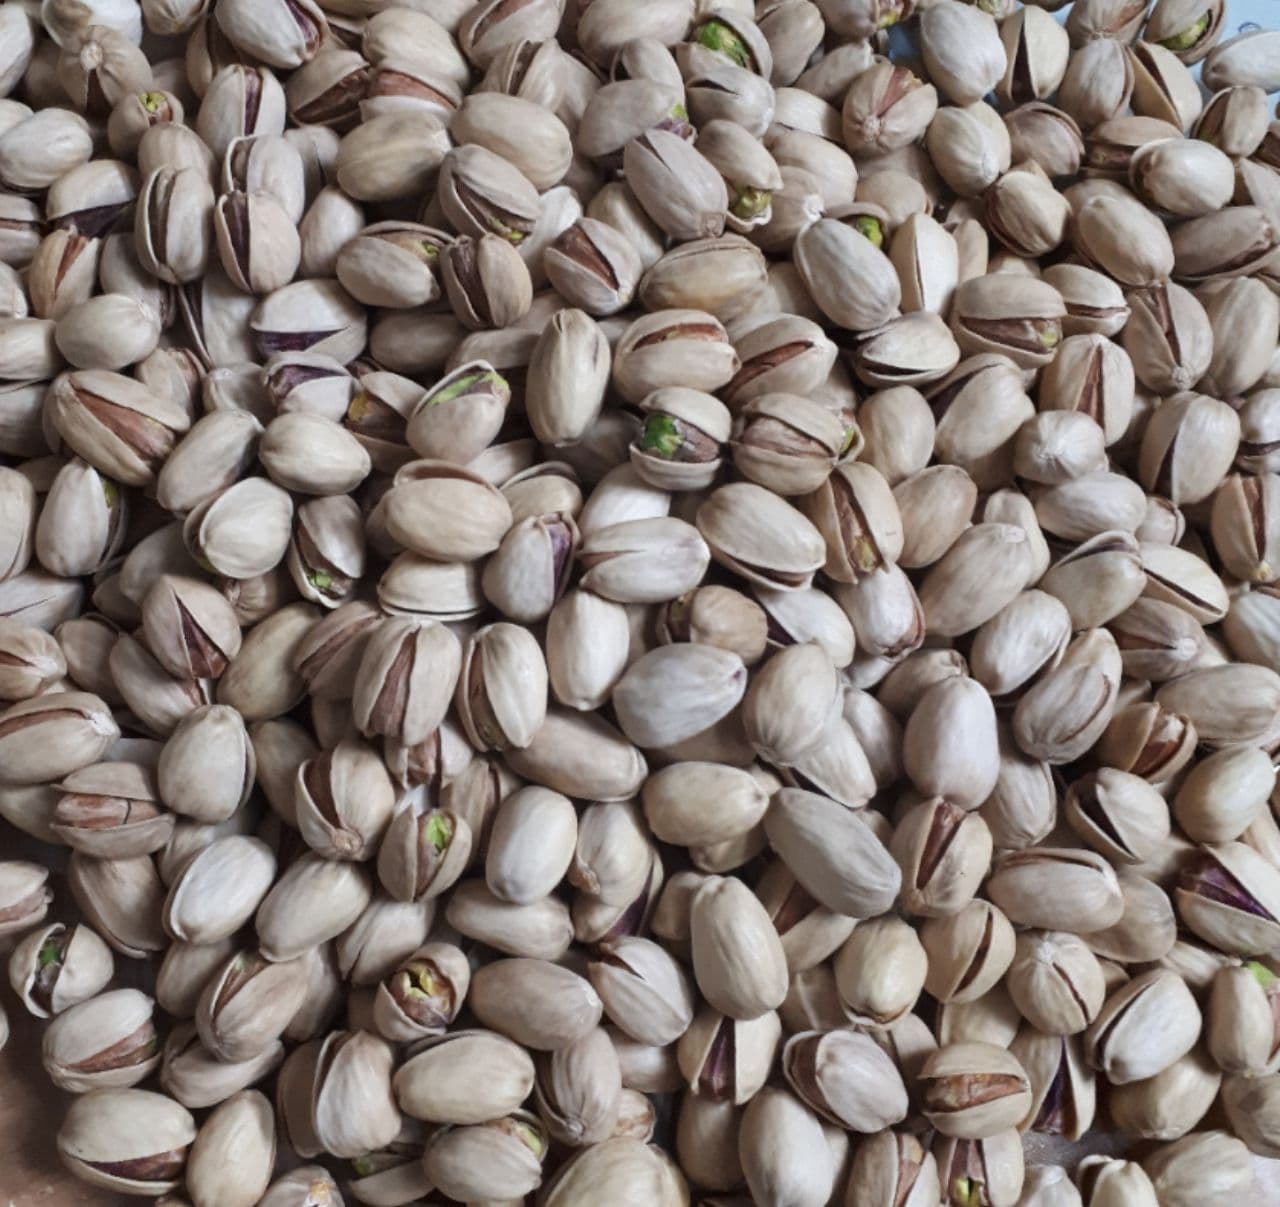 Sale of Iranian pistachios, kaleghchi model, size 26-28, separated